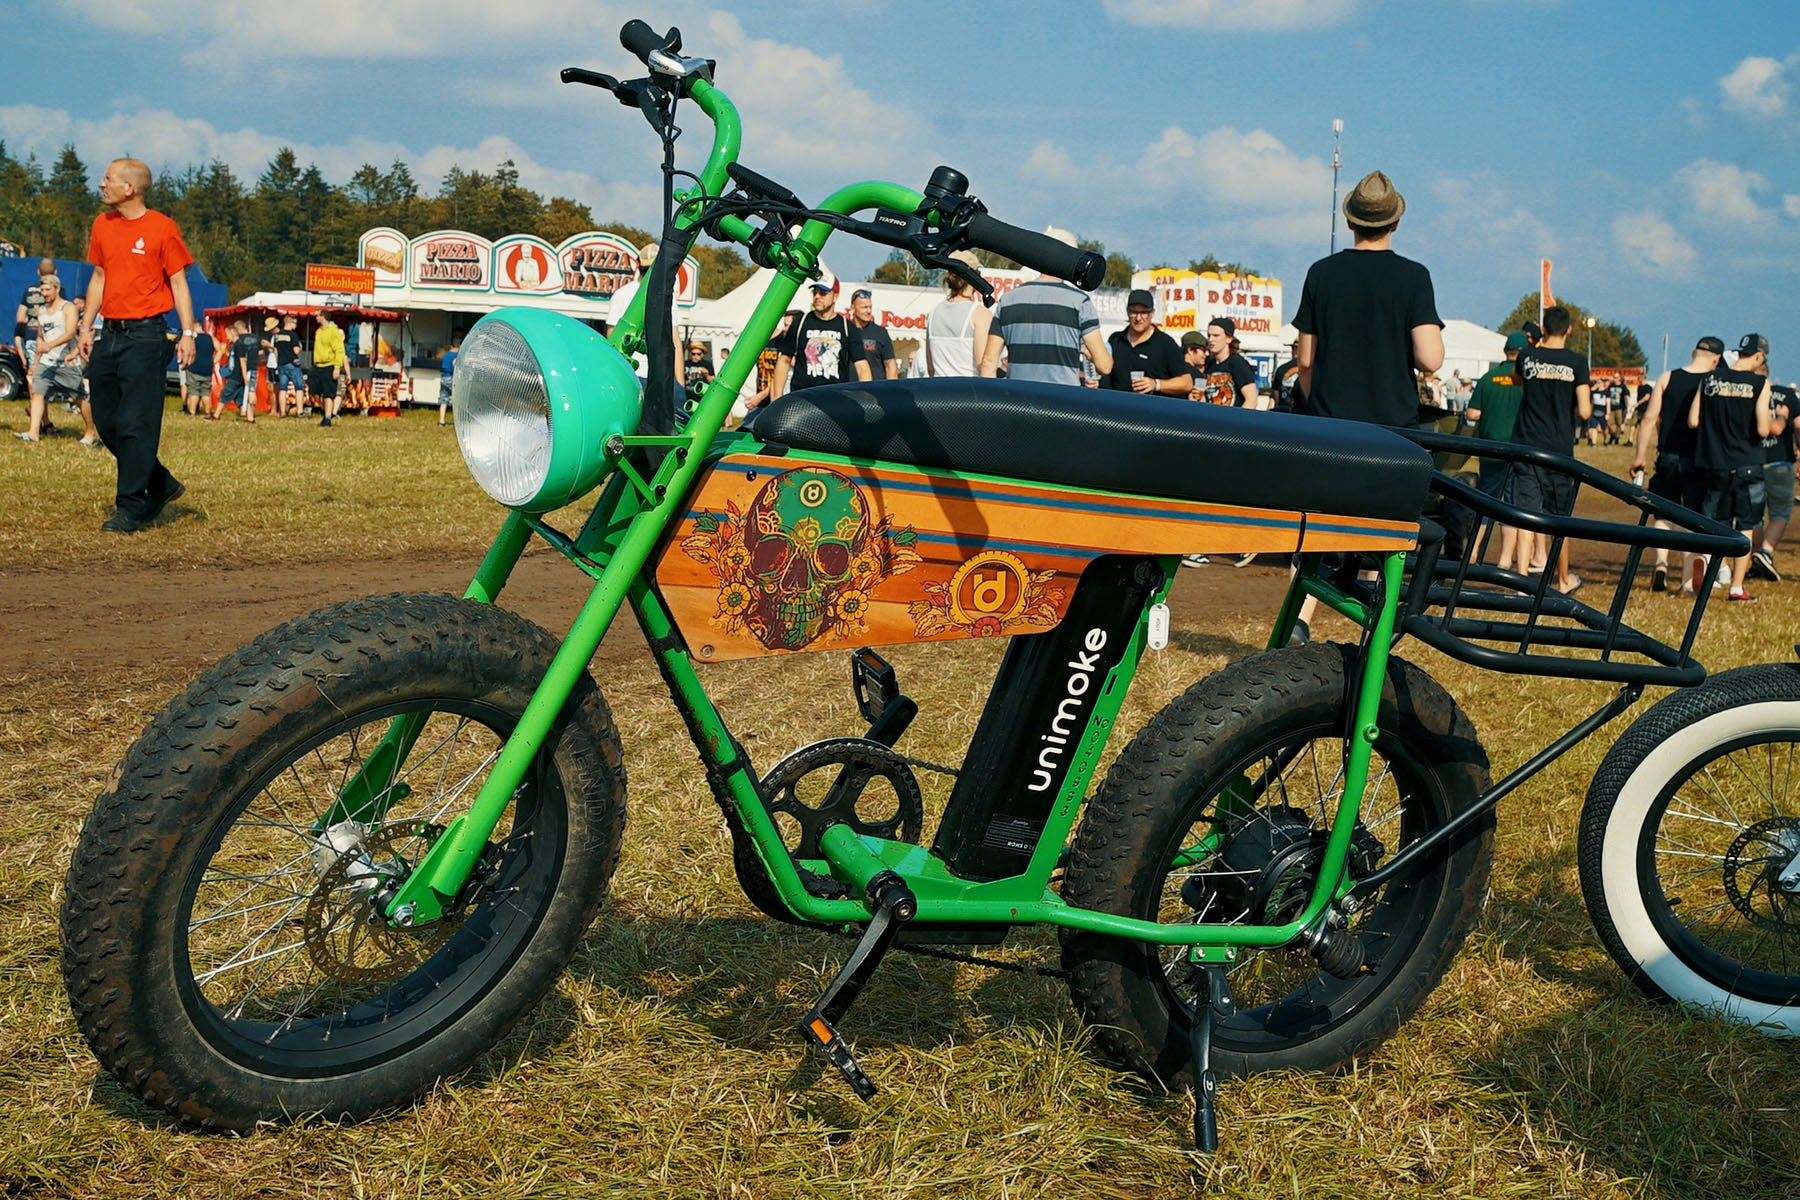 Throughout Germany with the UNI Moke: The Vintage E-Bike at Festivals